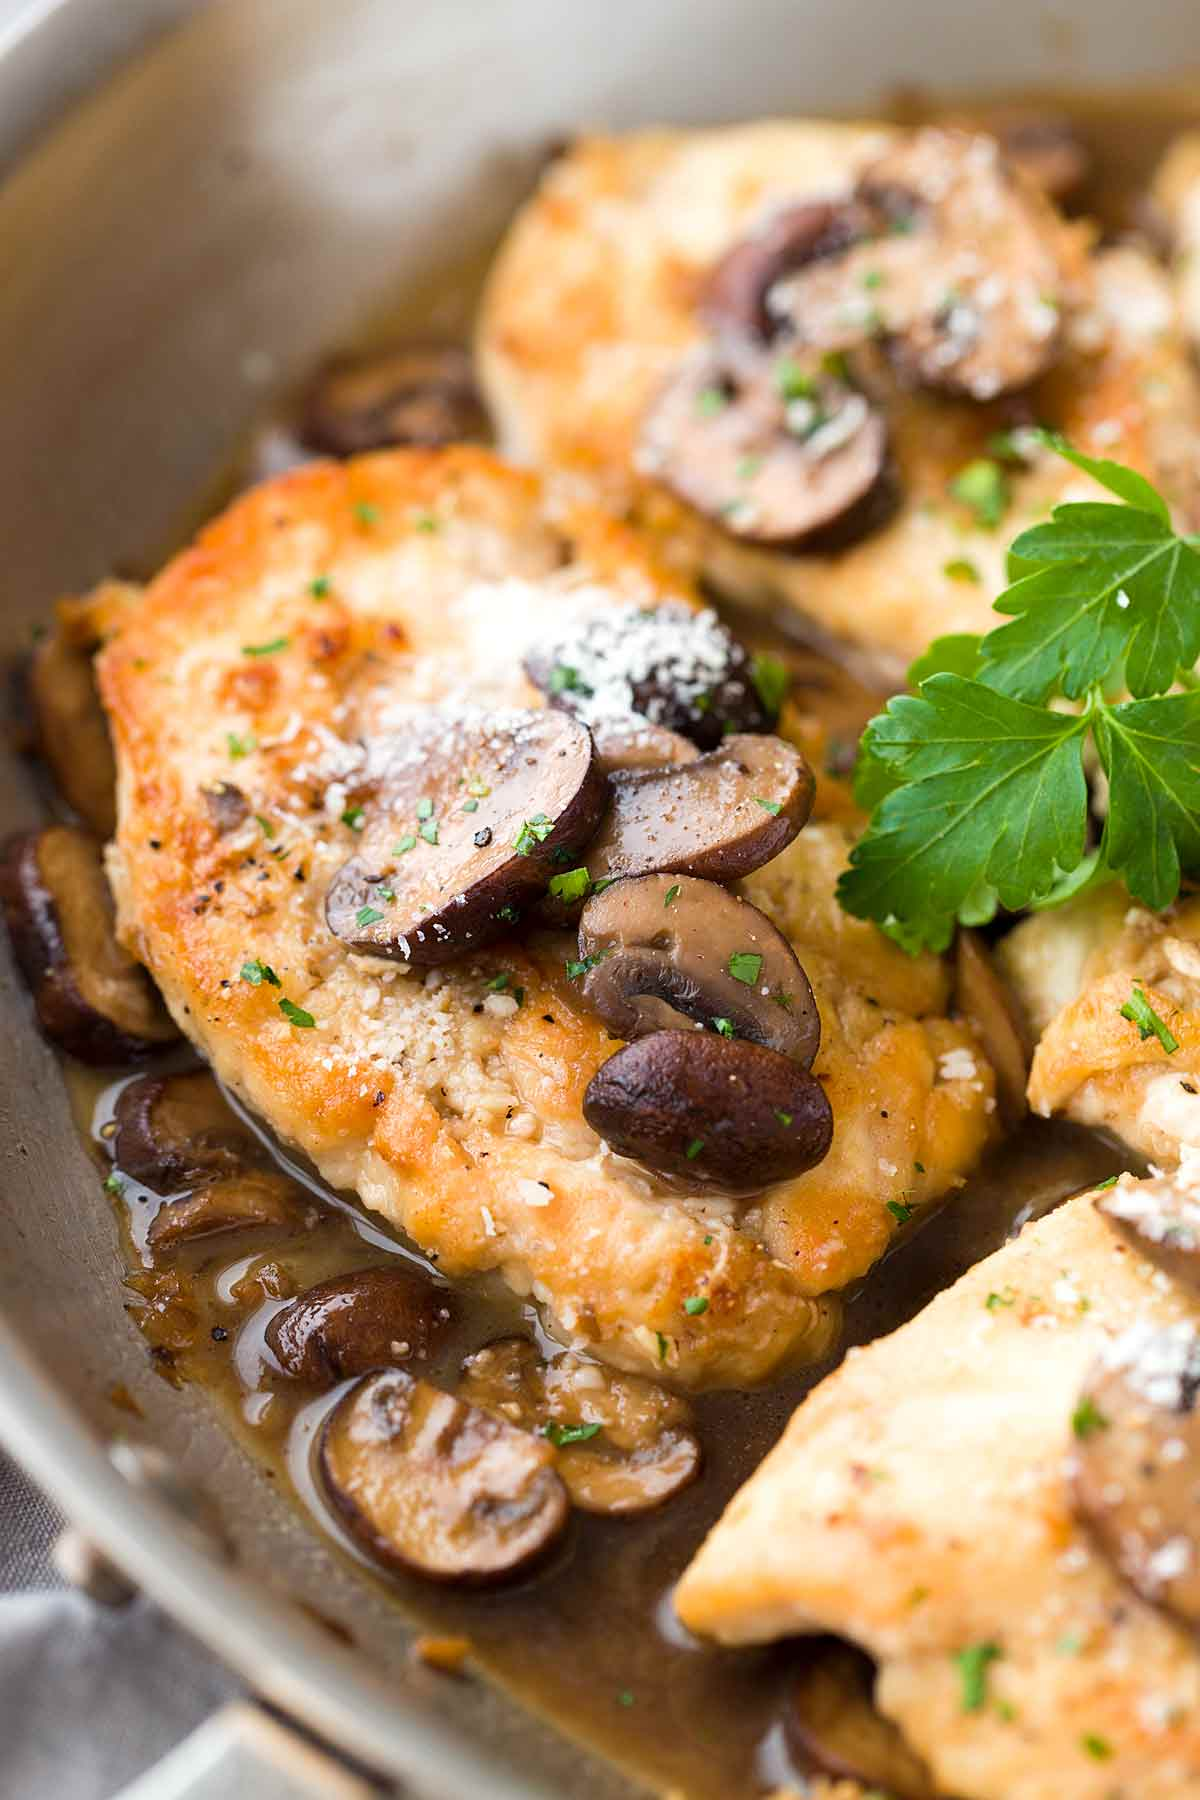 Lightly browned chicken simmering in a sweet marsala wine sauce